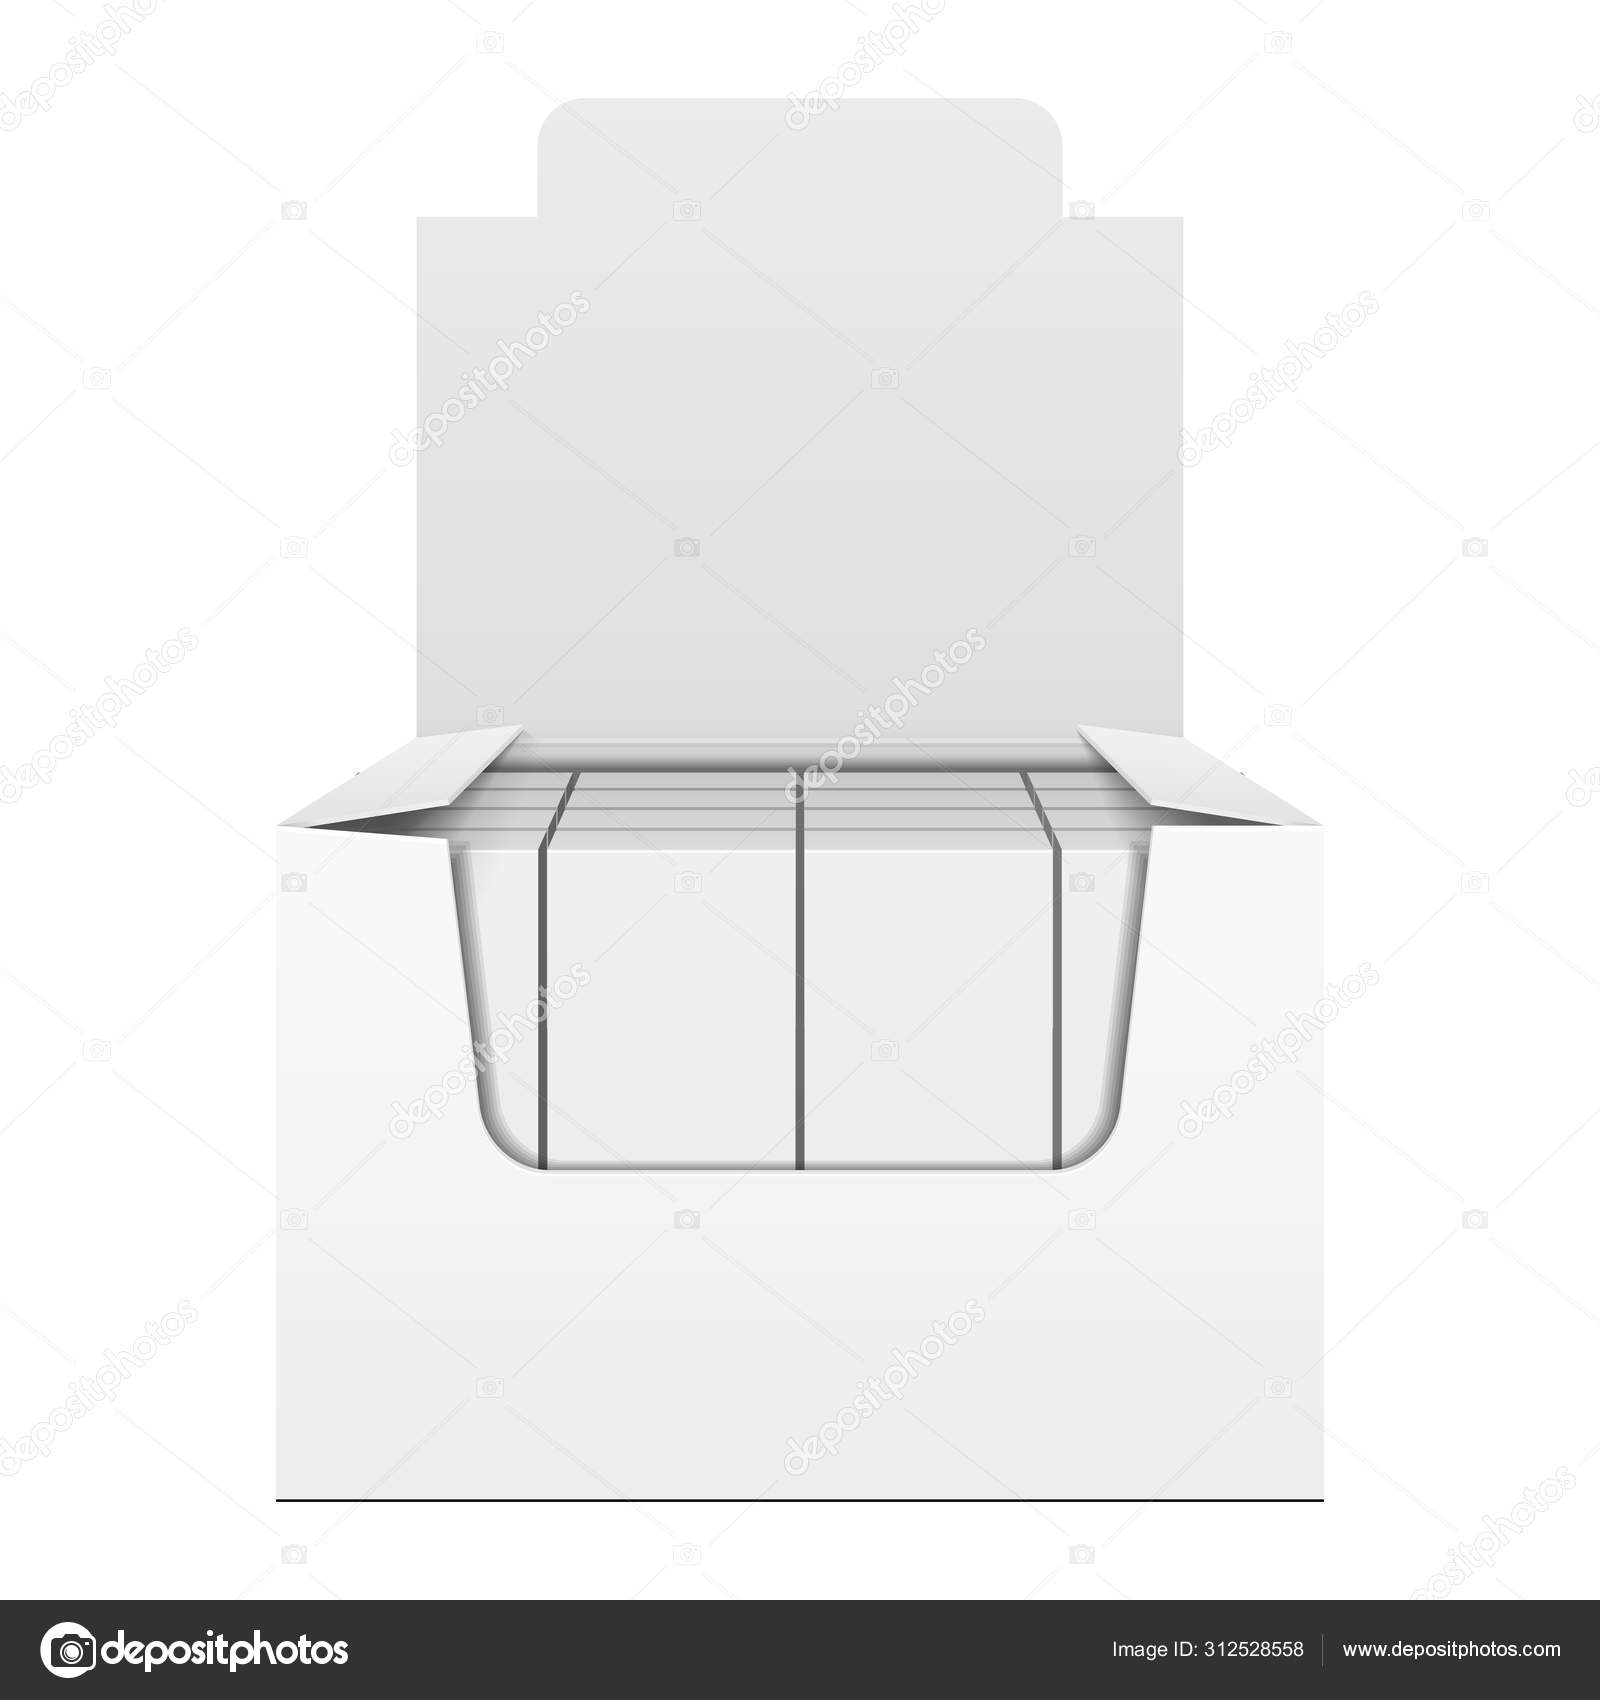 Mockup Display Holder Box Cardboard Filled Blank With Package